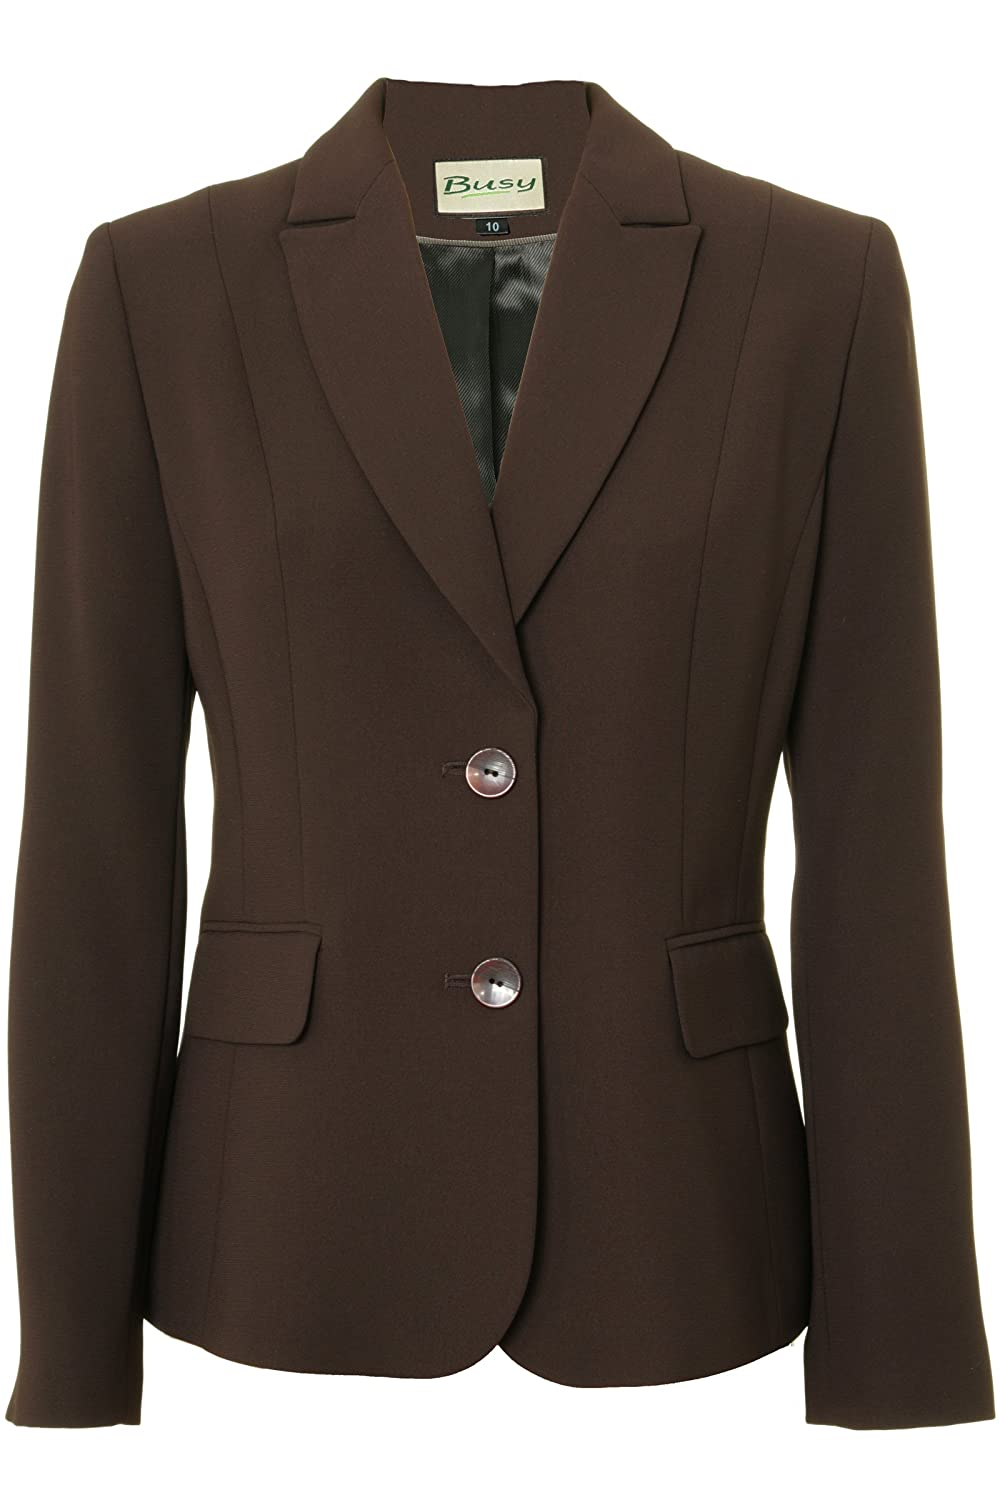 Busy Clothing Womens Brown Suit Jacket